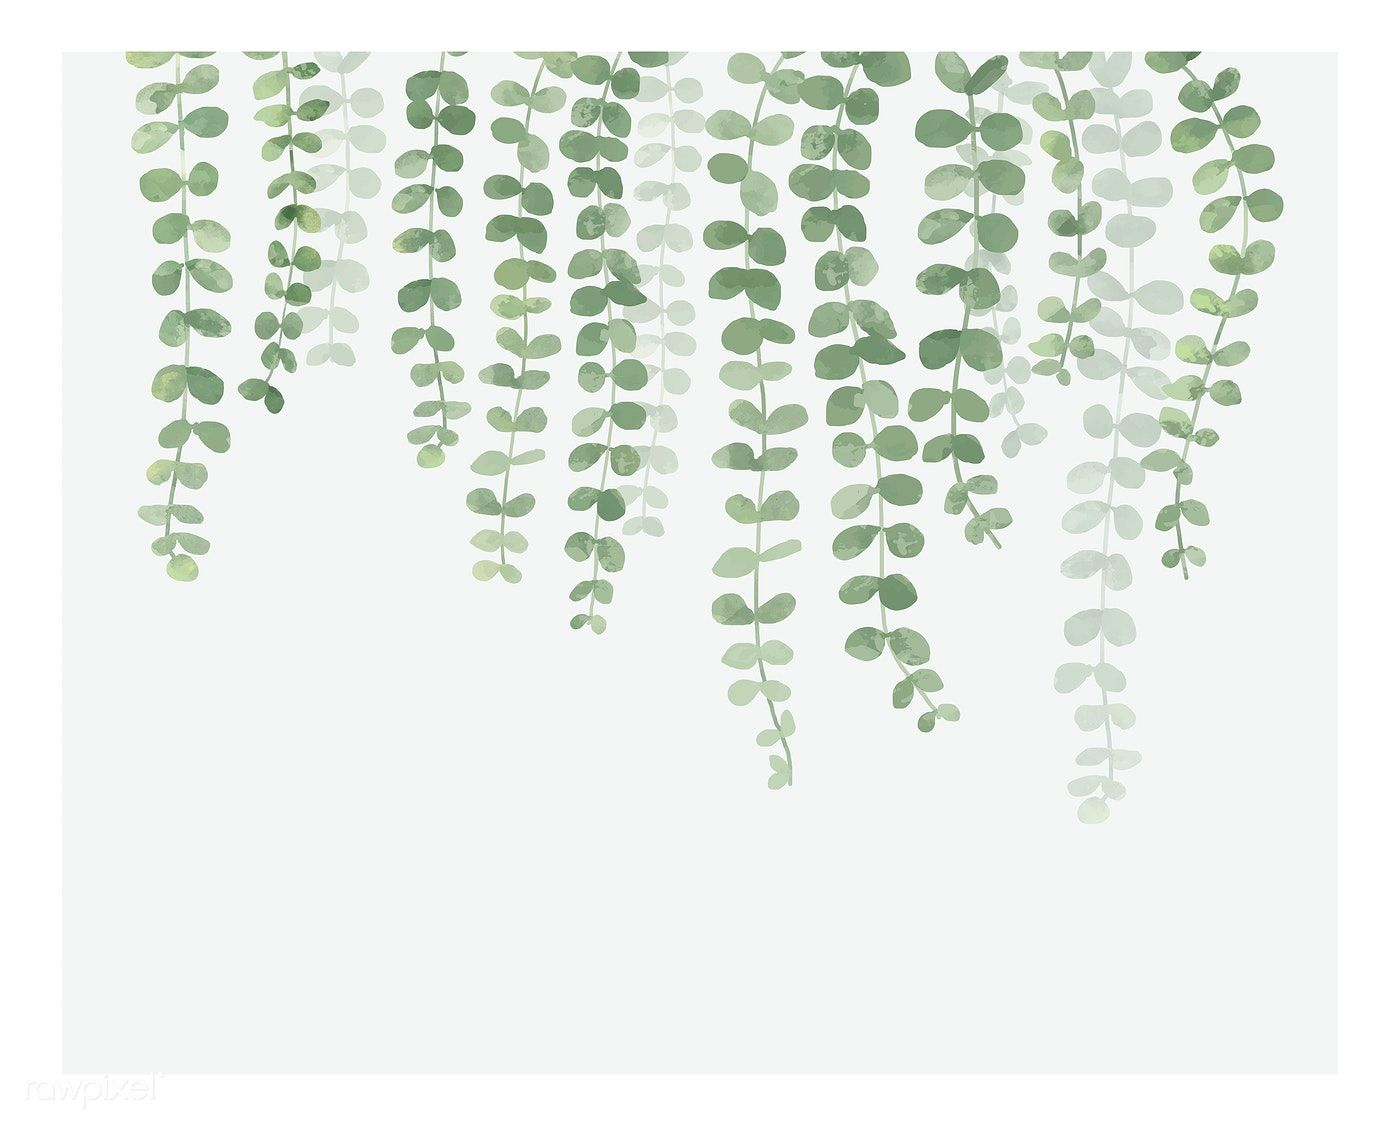 Hanging Plants Wallpapers Top Free Hanging Plants Backgrounds Wallpaperaccess